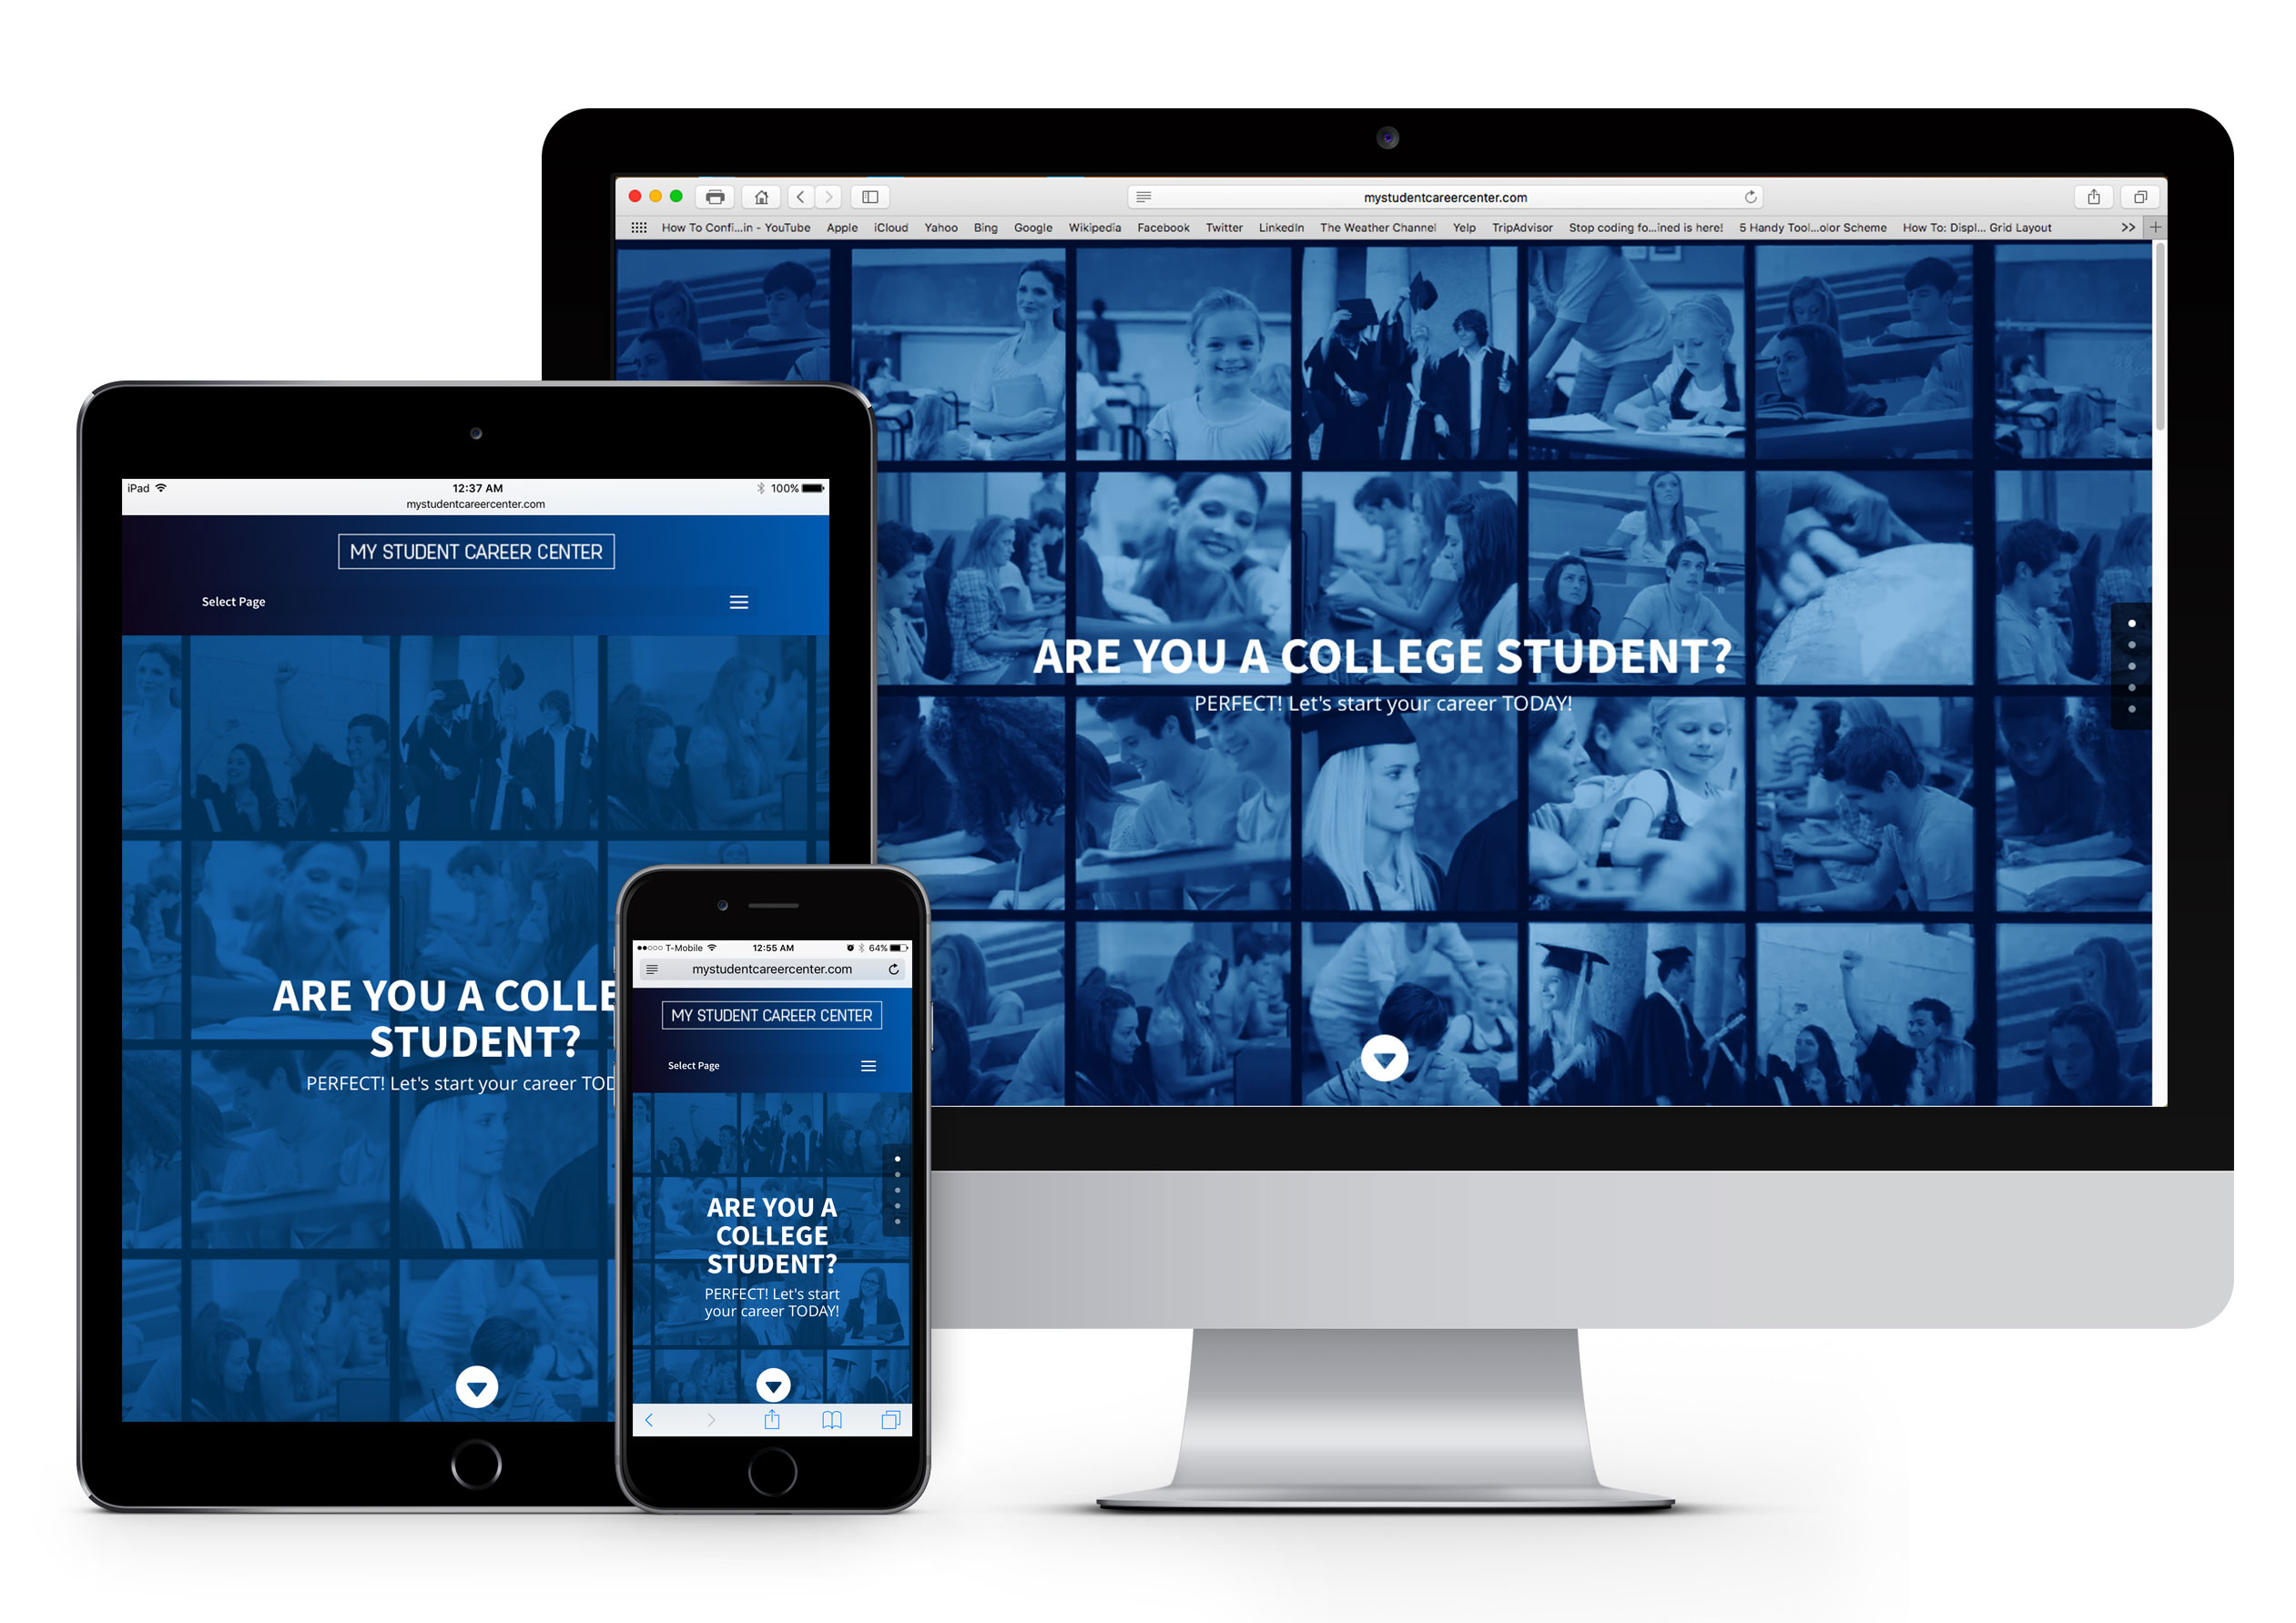 MSCC-responsive-website-showcase